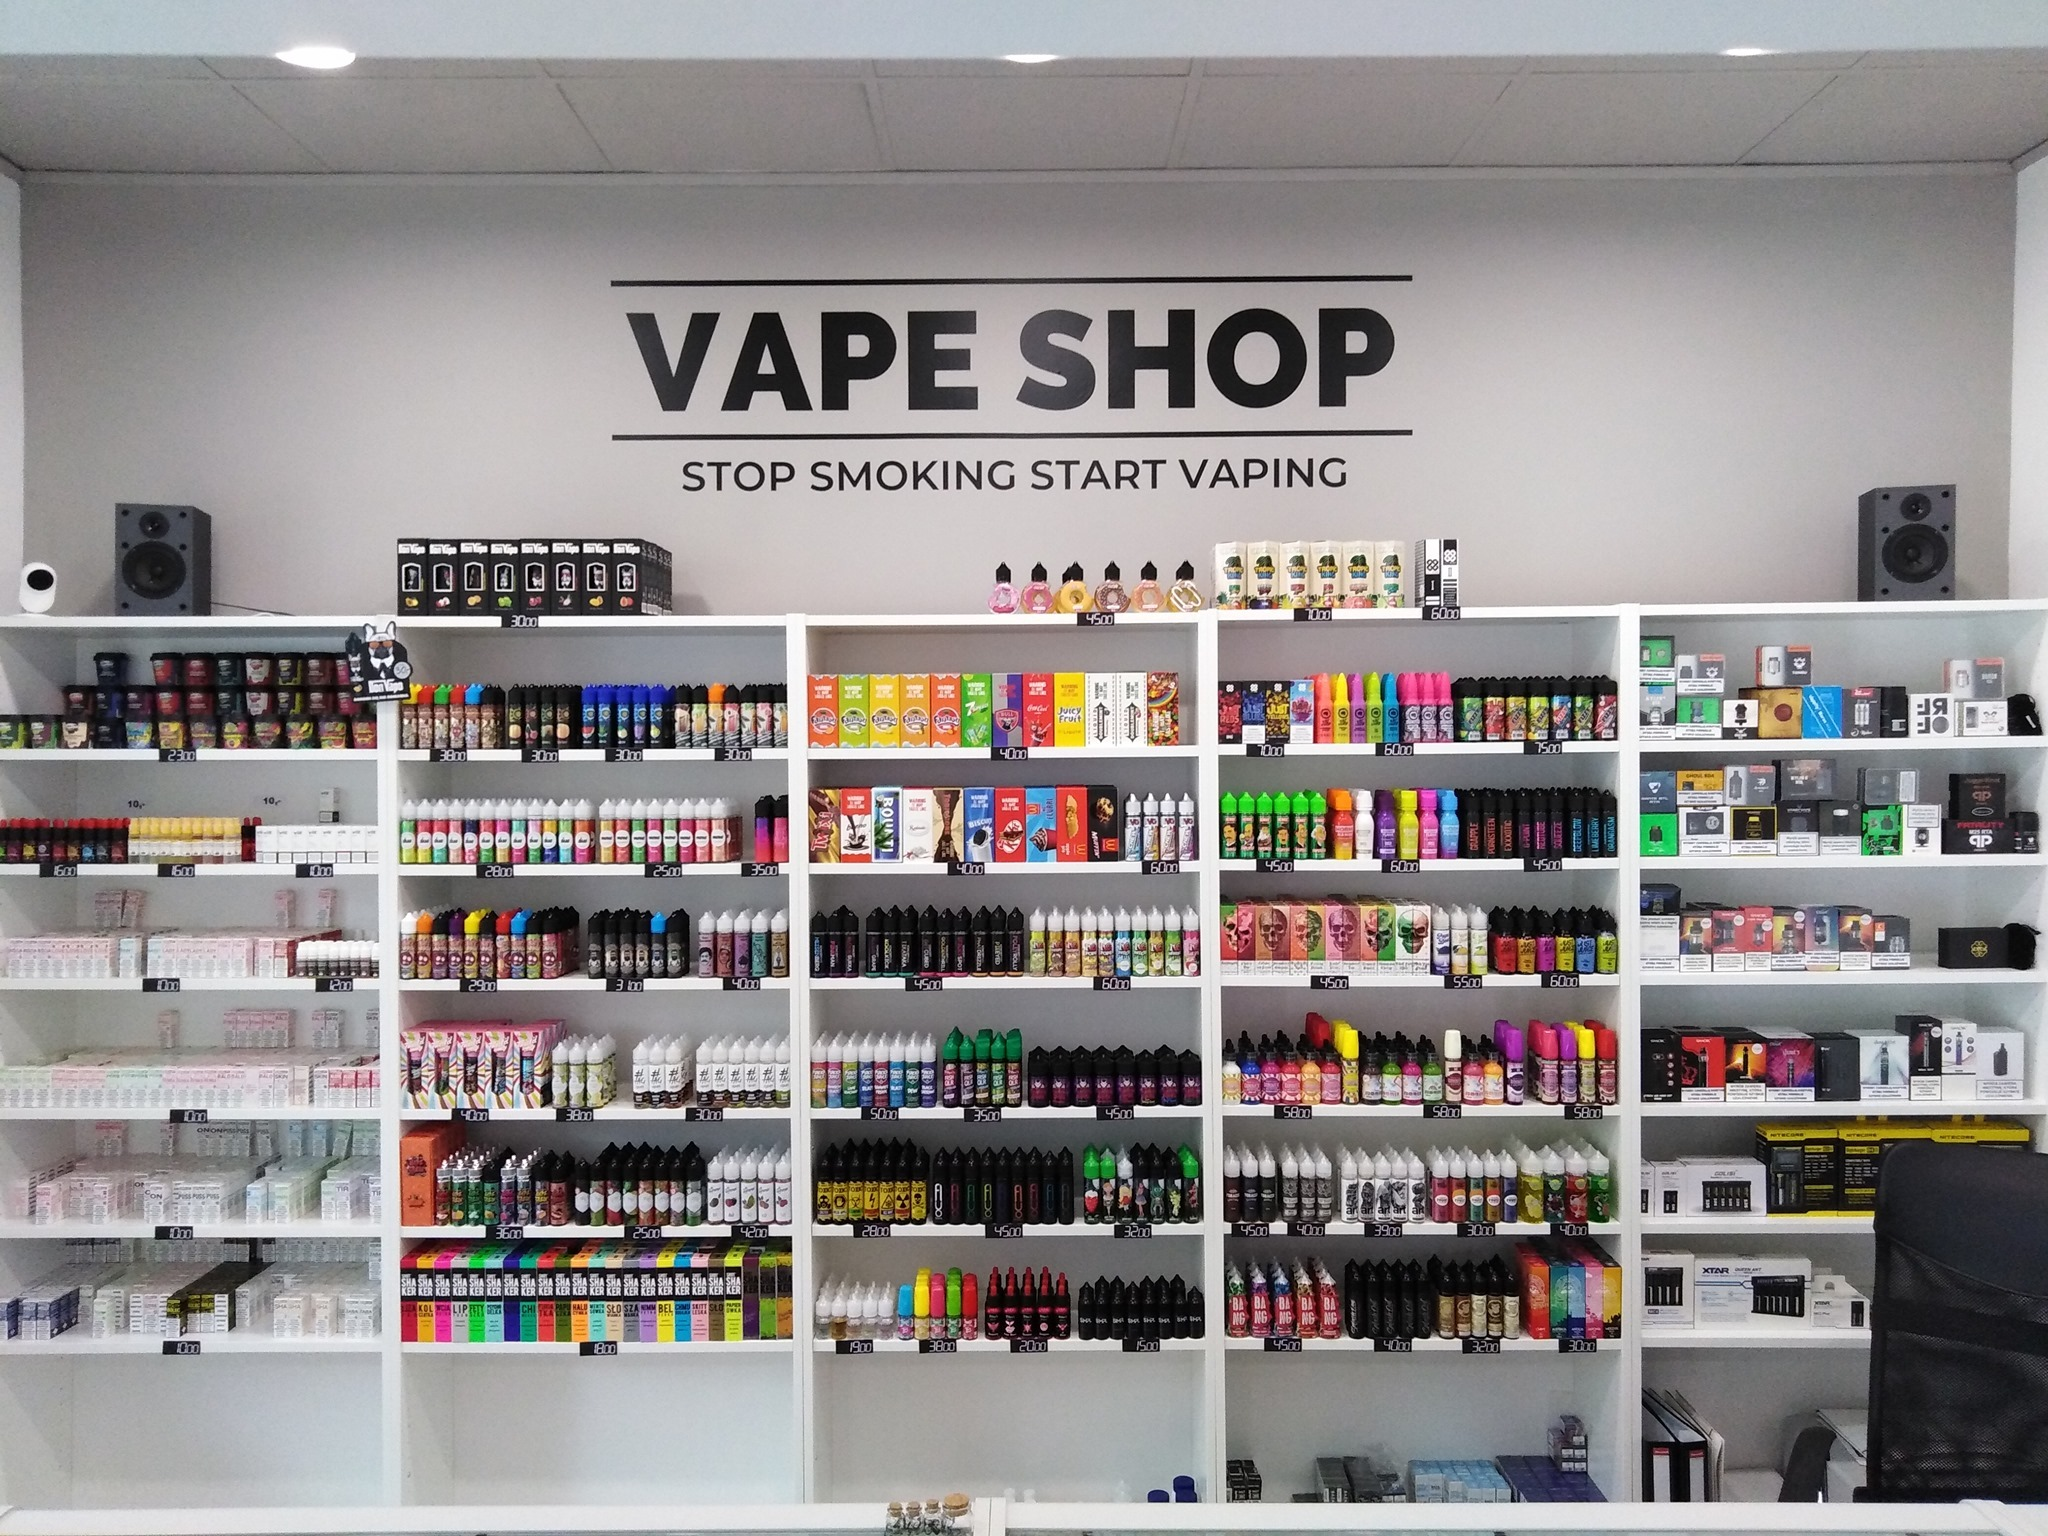 Best online vape store in 2020 – Top 10 vape shop list | VAPE HK